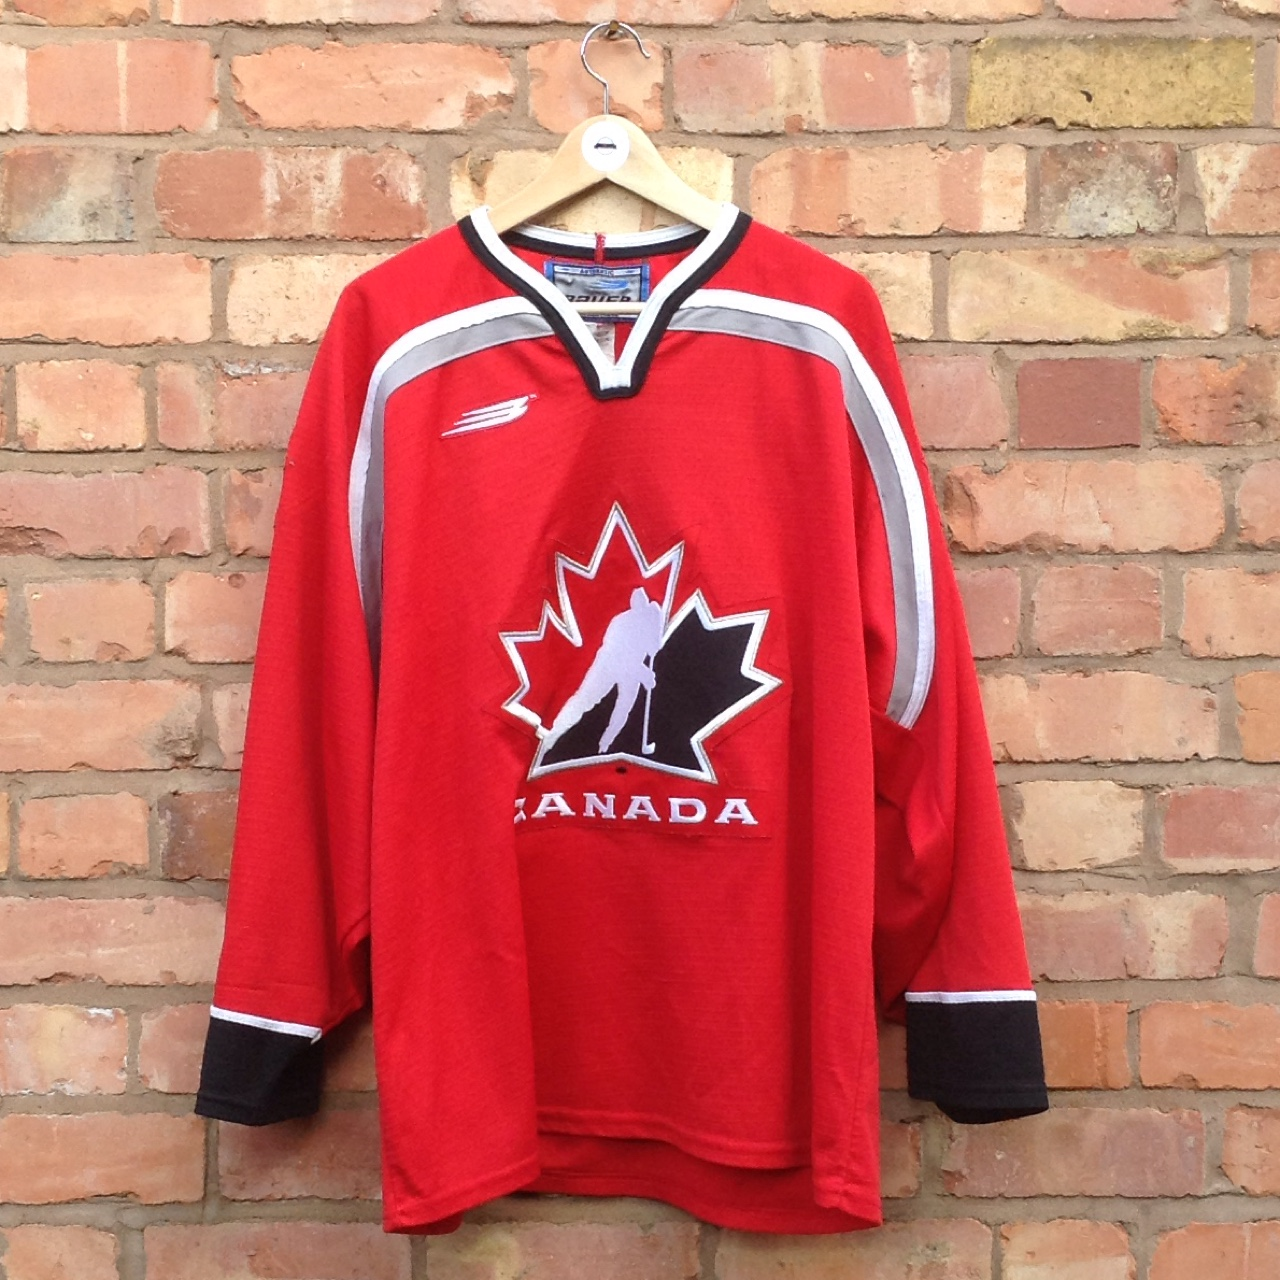 huge selection of a5cdf c3706 Mens rare vintage overhead Canada ice hockey jersey ...